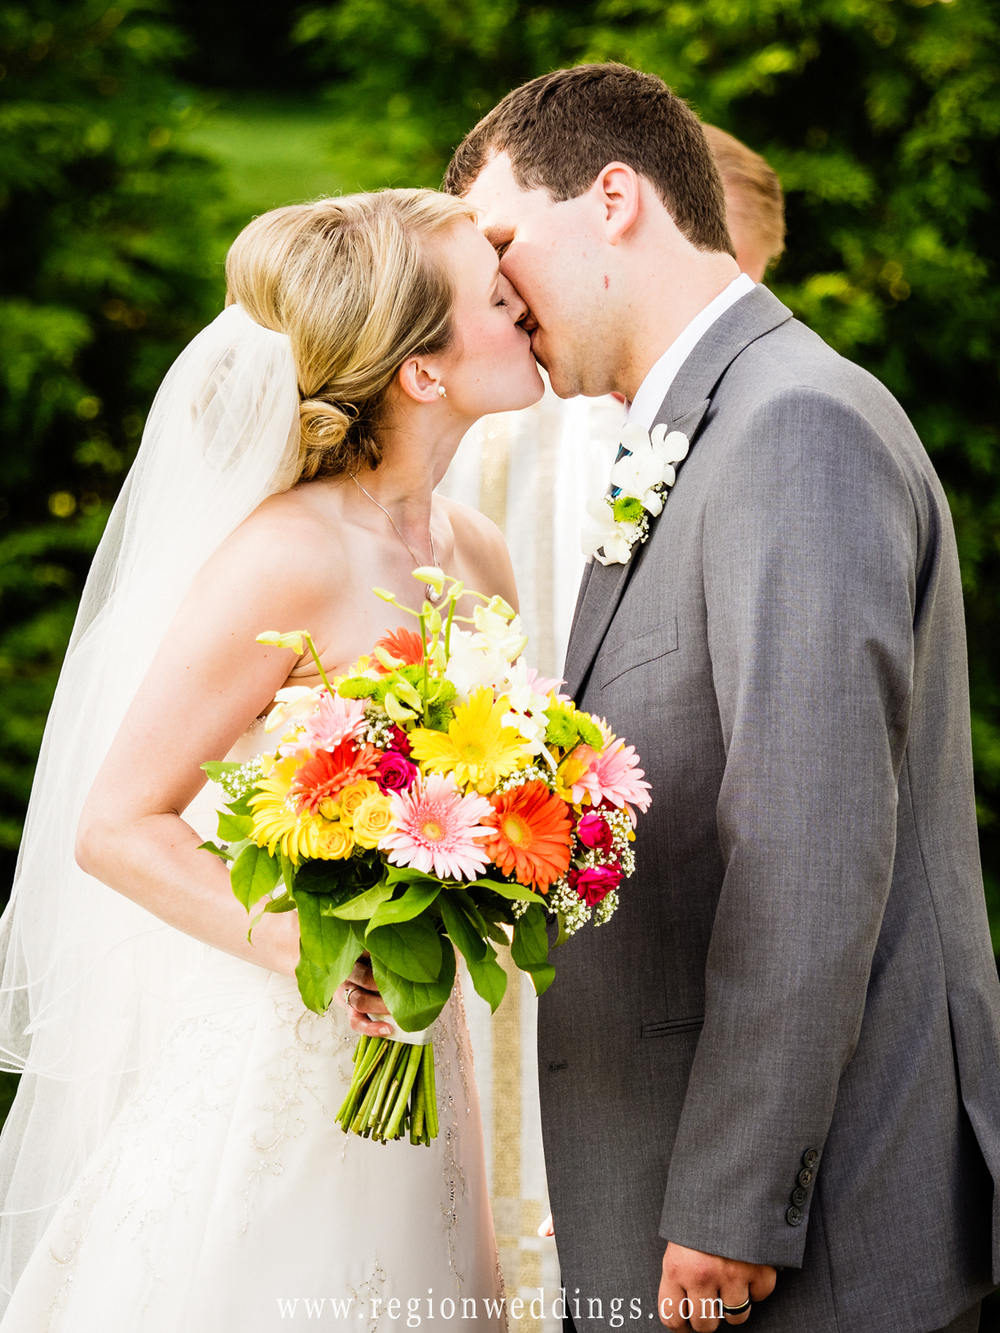 First kiss at an outdoor wedding ceremony.